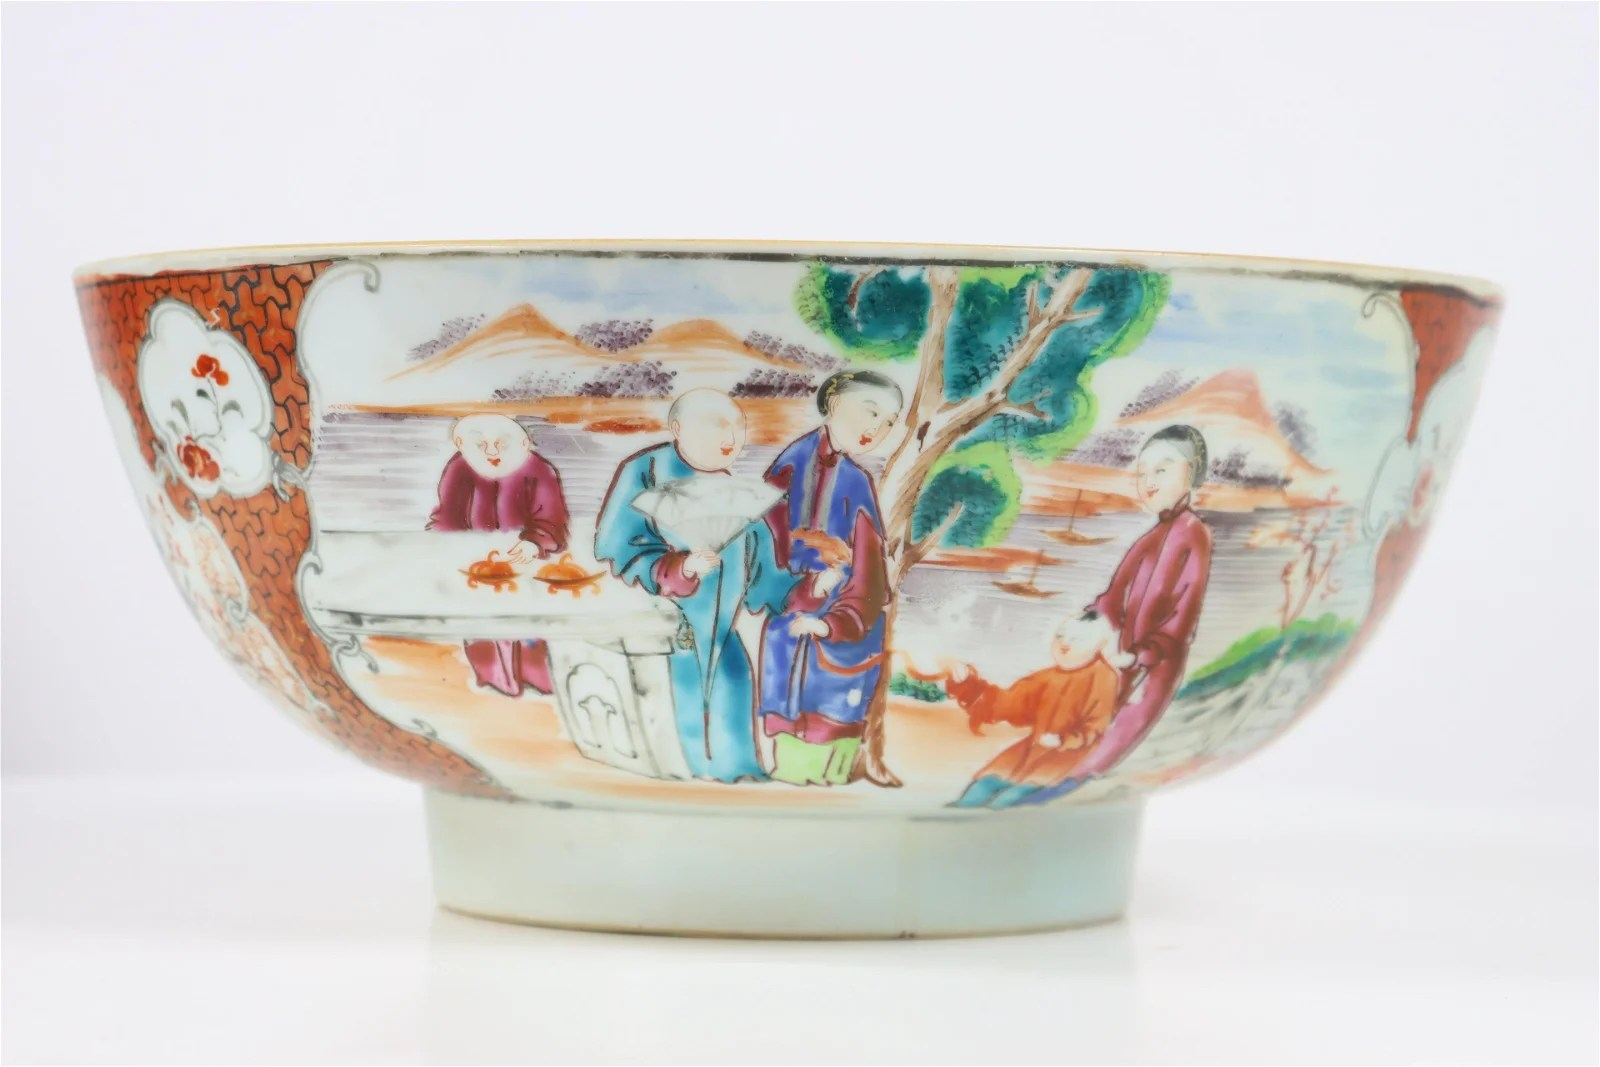 18th/19th C. Chinese Export Bowl, Famille Figures